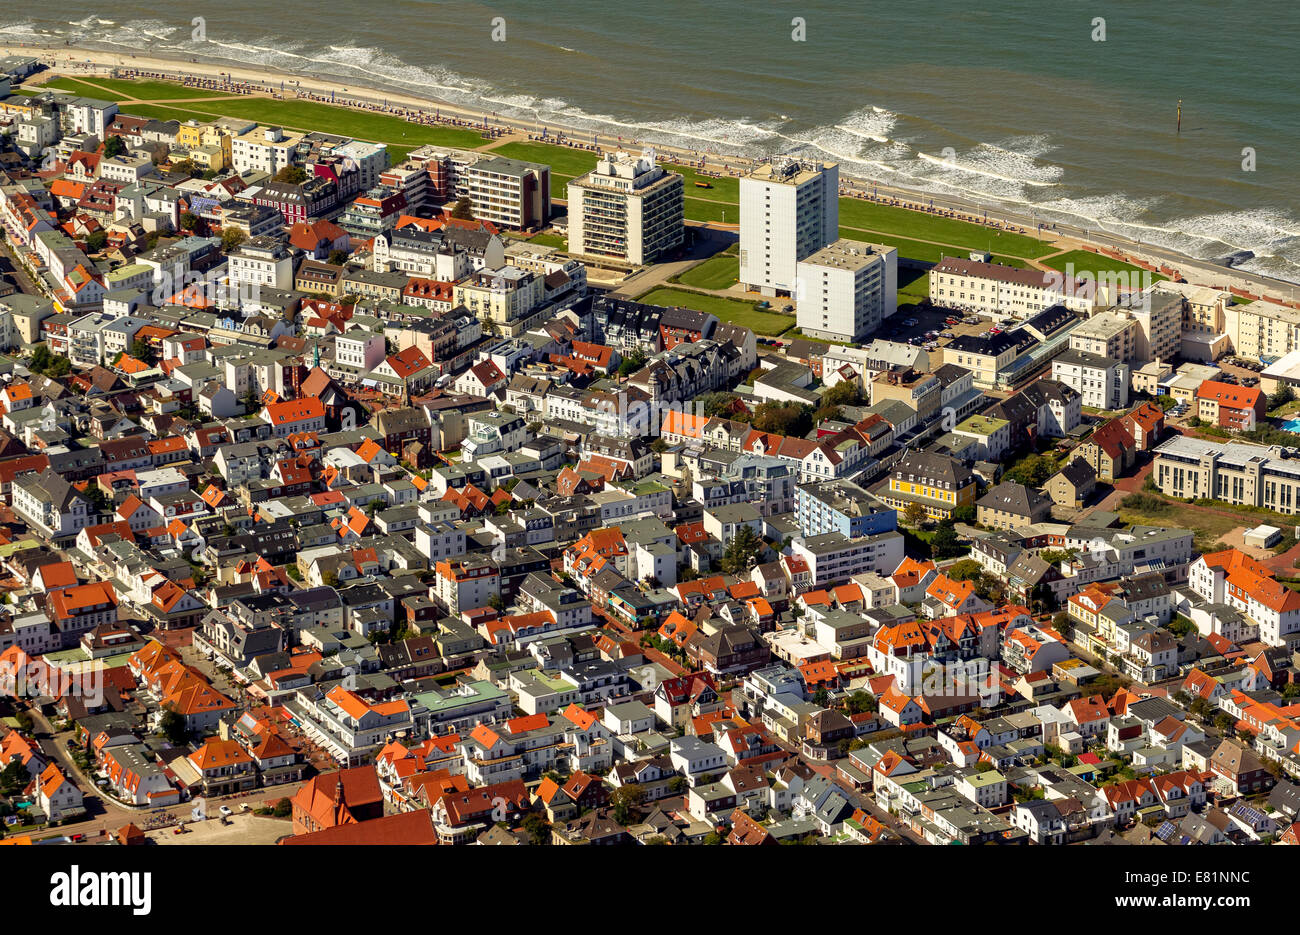 Aerial view, Norderney, island in the North Sea, East Frisian Islands, Lower Saxony, Germany Stock Photo